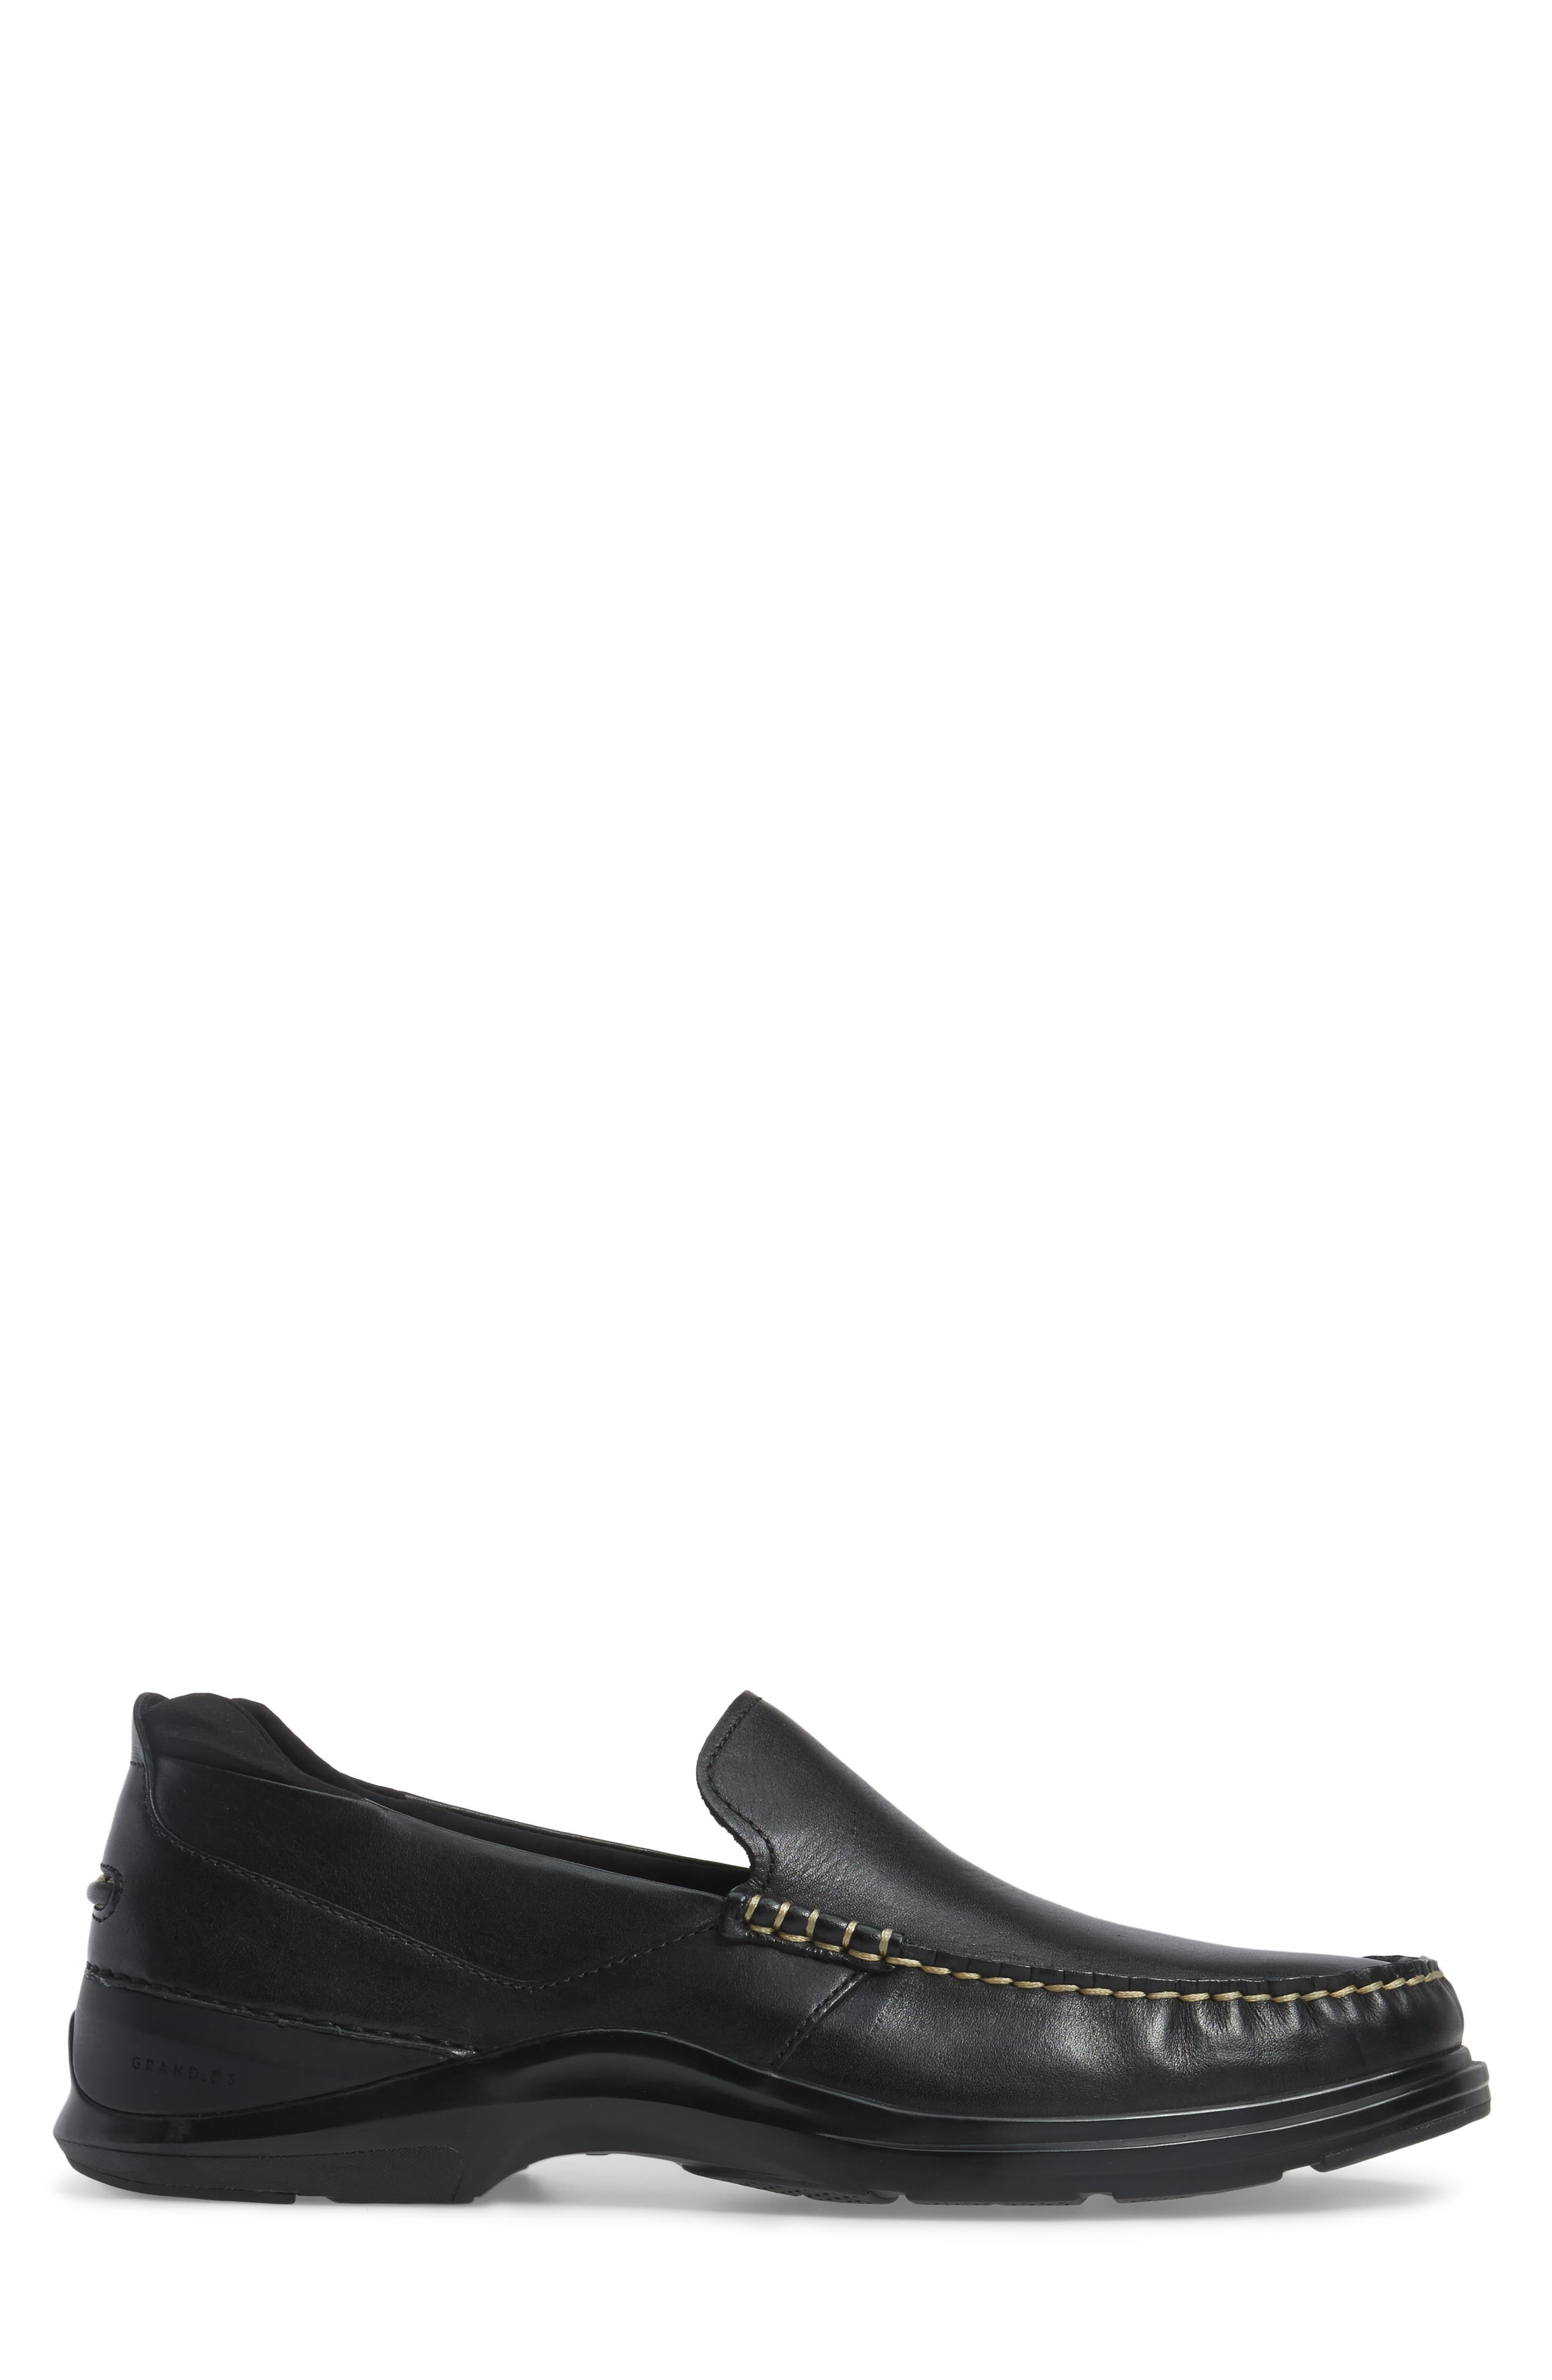 Bancroft Loafer,                             Alternate thumbnail 3, color,                             Black